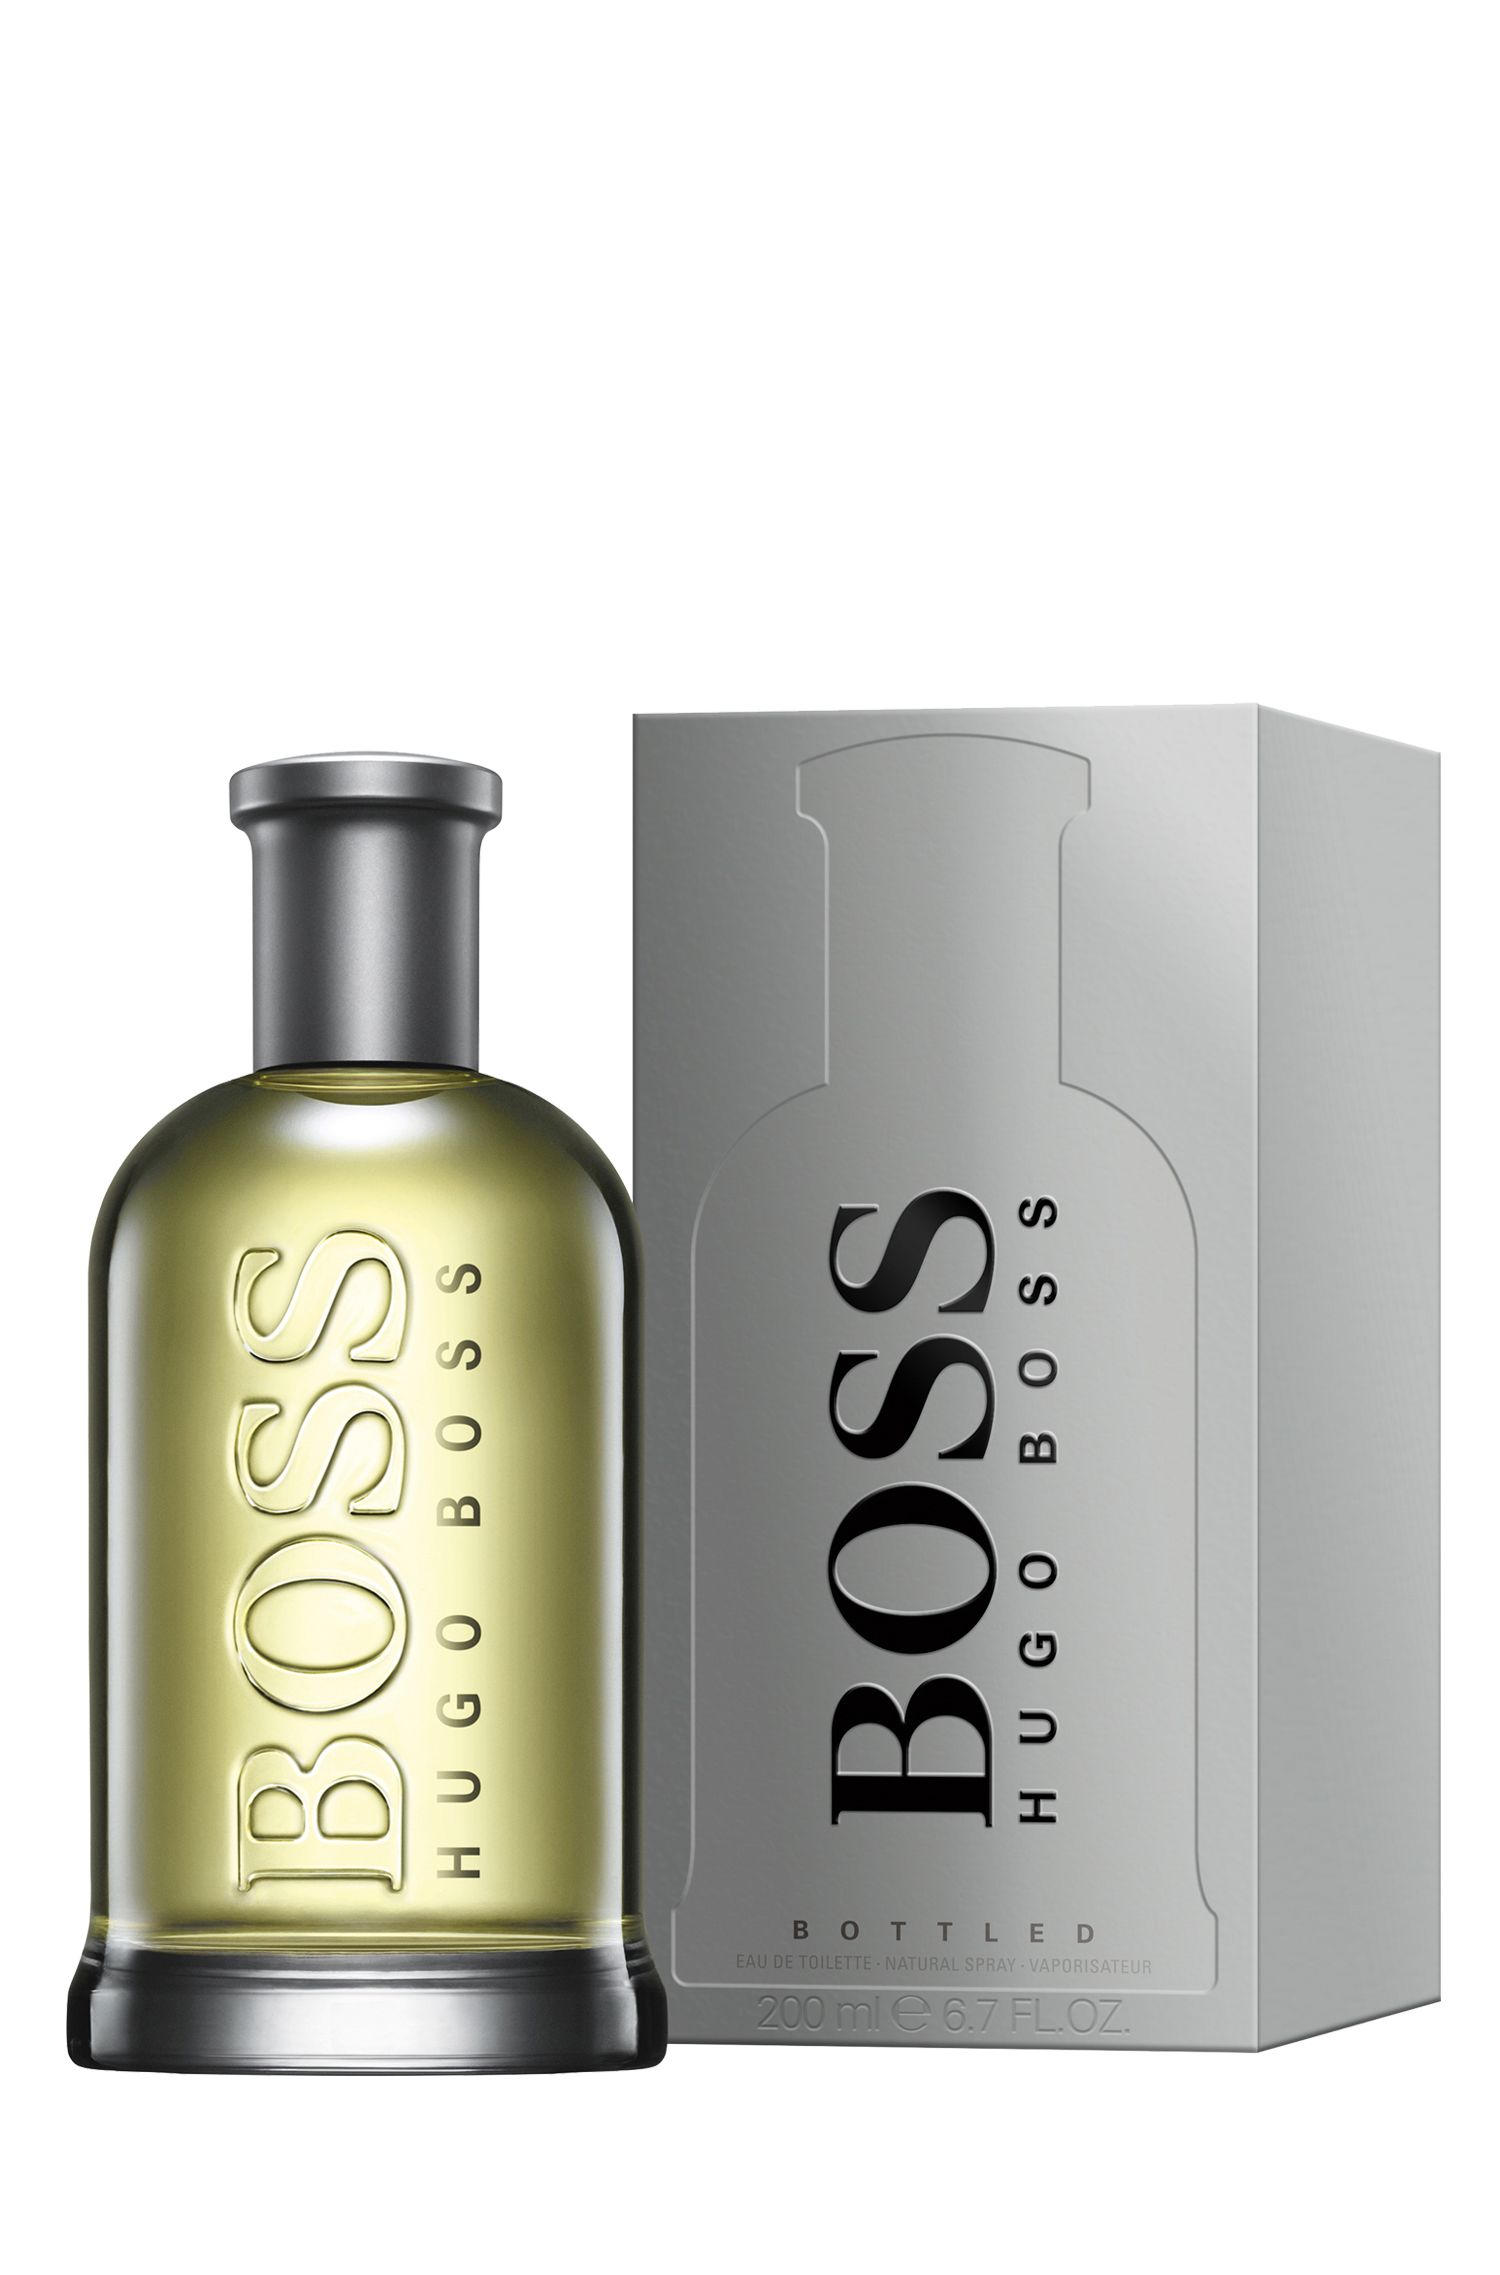 6.7 fl. oz. (200 mL) Eau de Toilette | BOSS Bottled